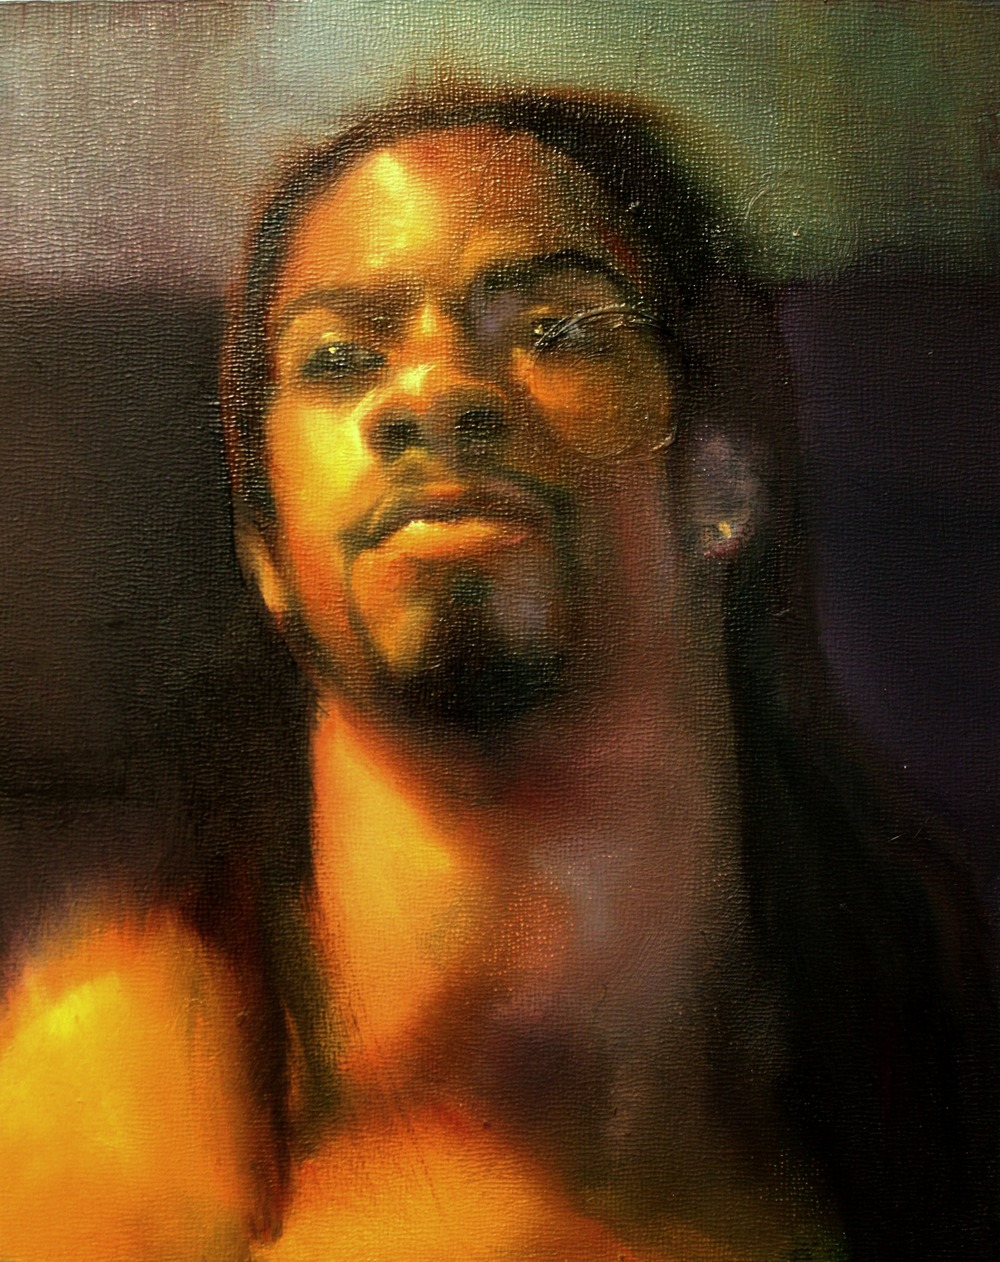 "Kevin, oil on wood panel, 12"" x 8"", 2015"